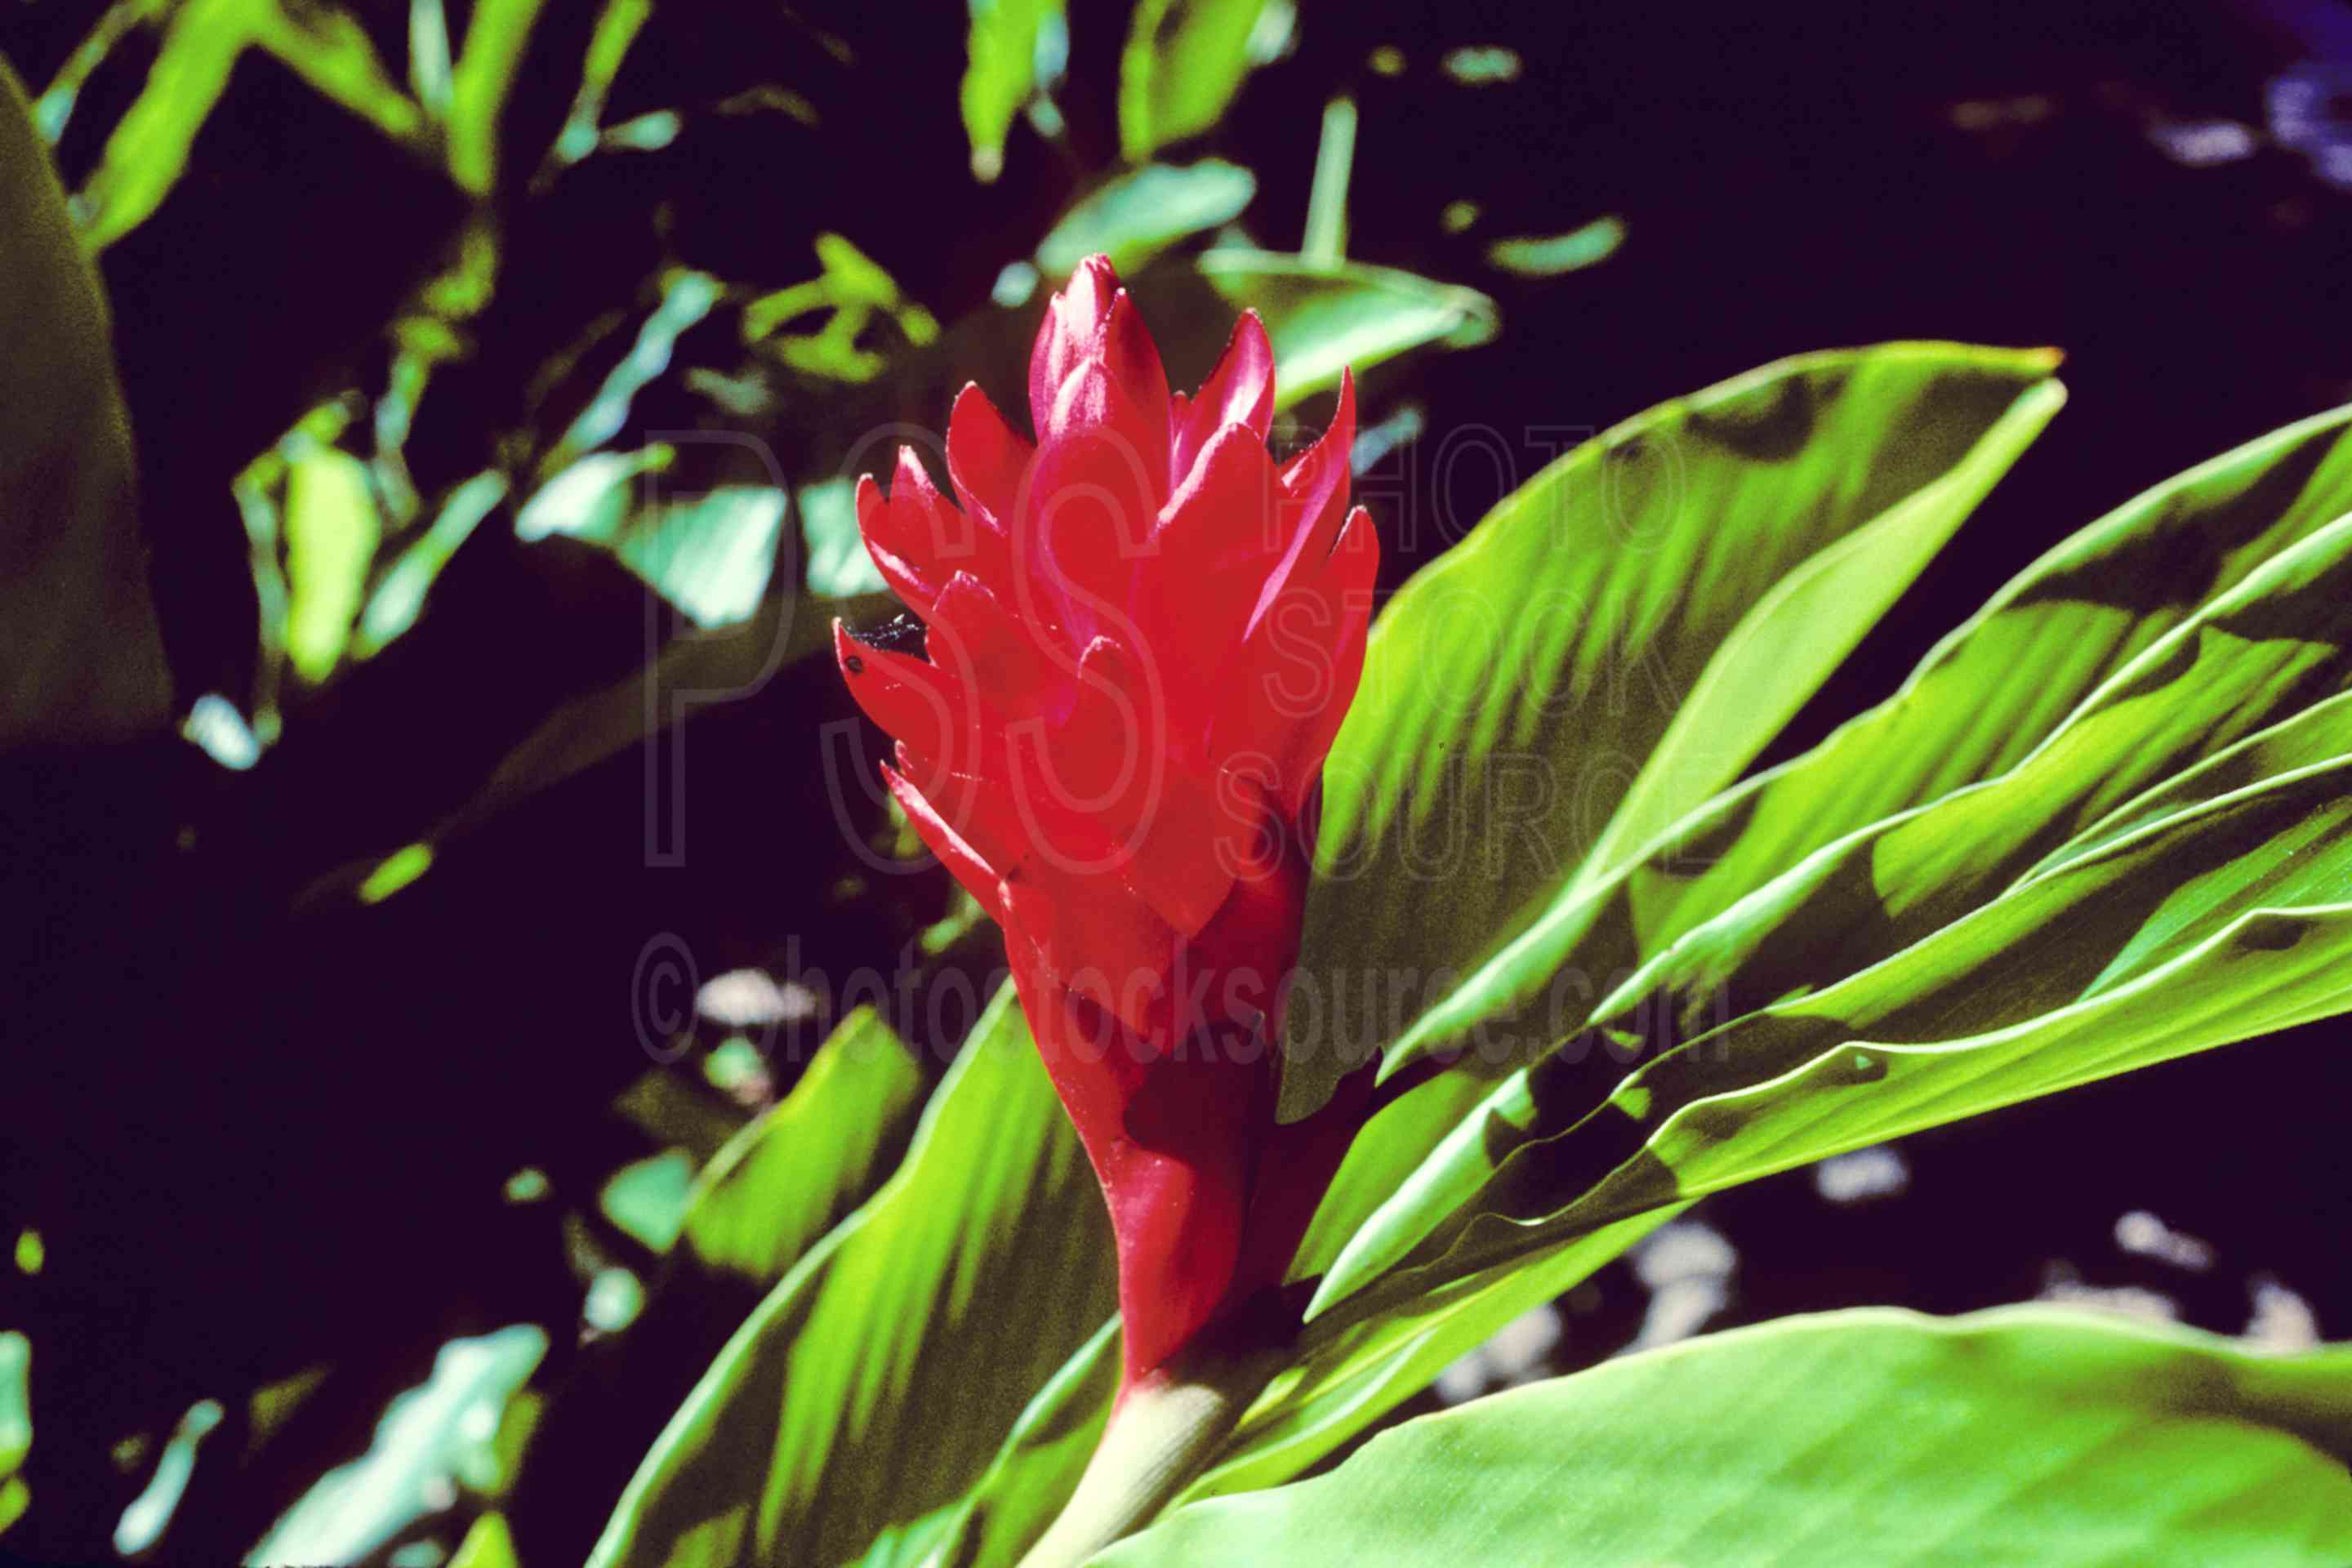 Photo of red ginger flower by photo stock source flower waimea red ginger flowergingerred gingerplantusasflowersplants izmirmasajfo